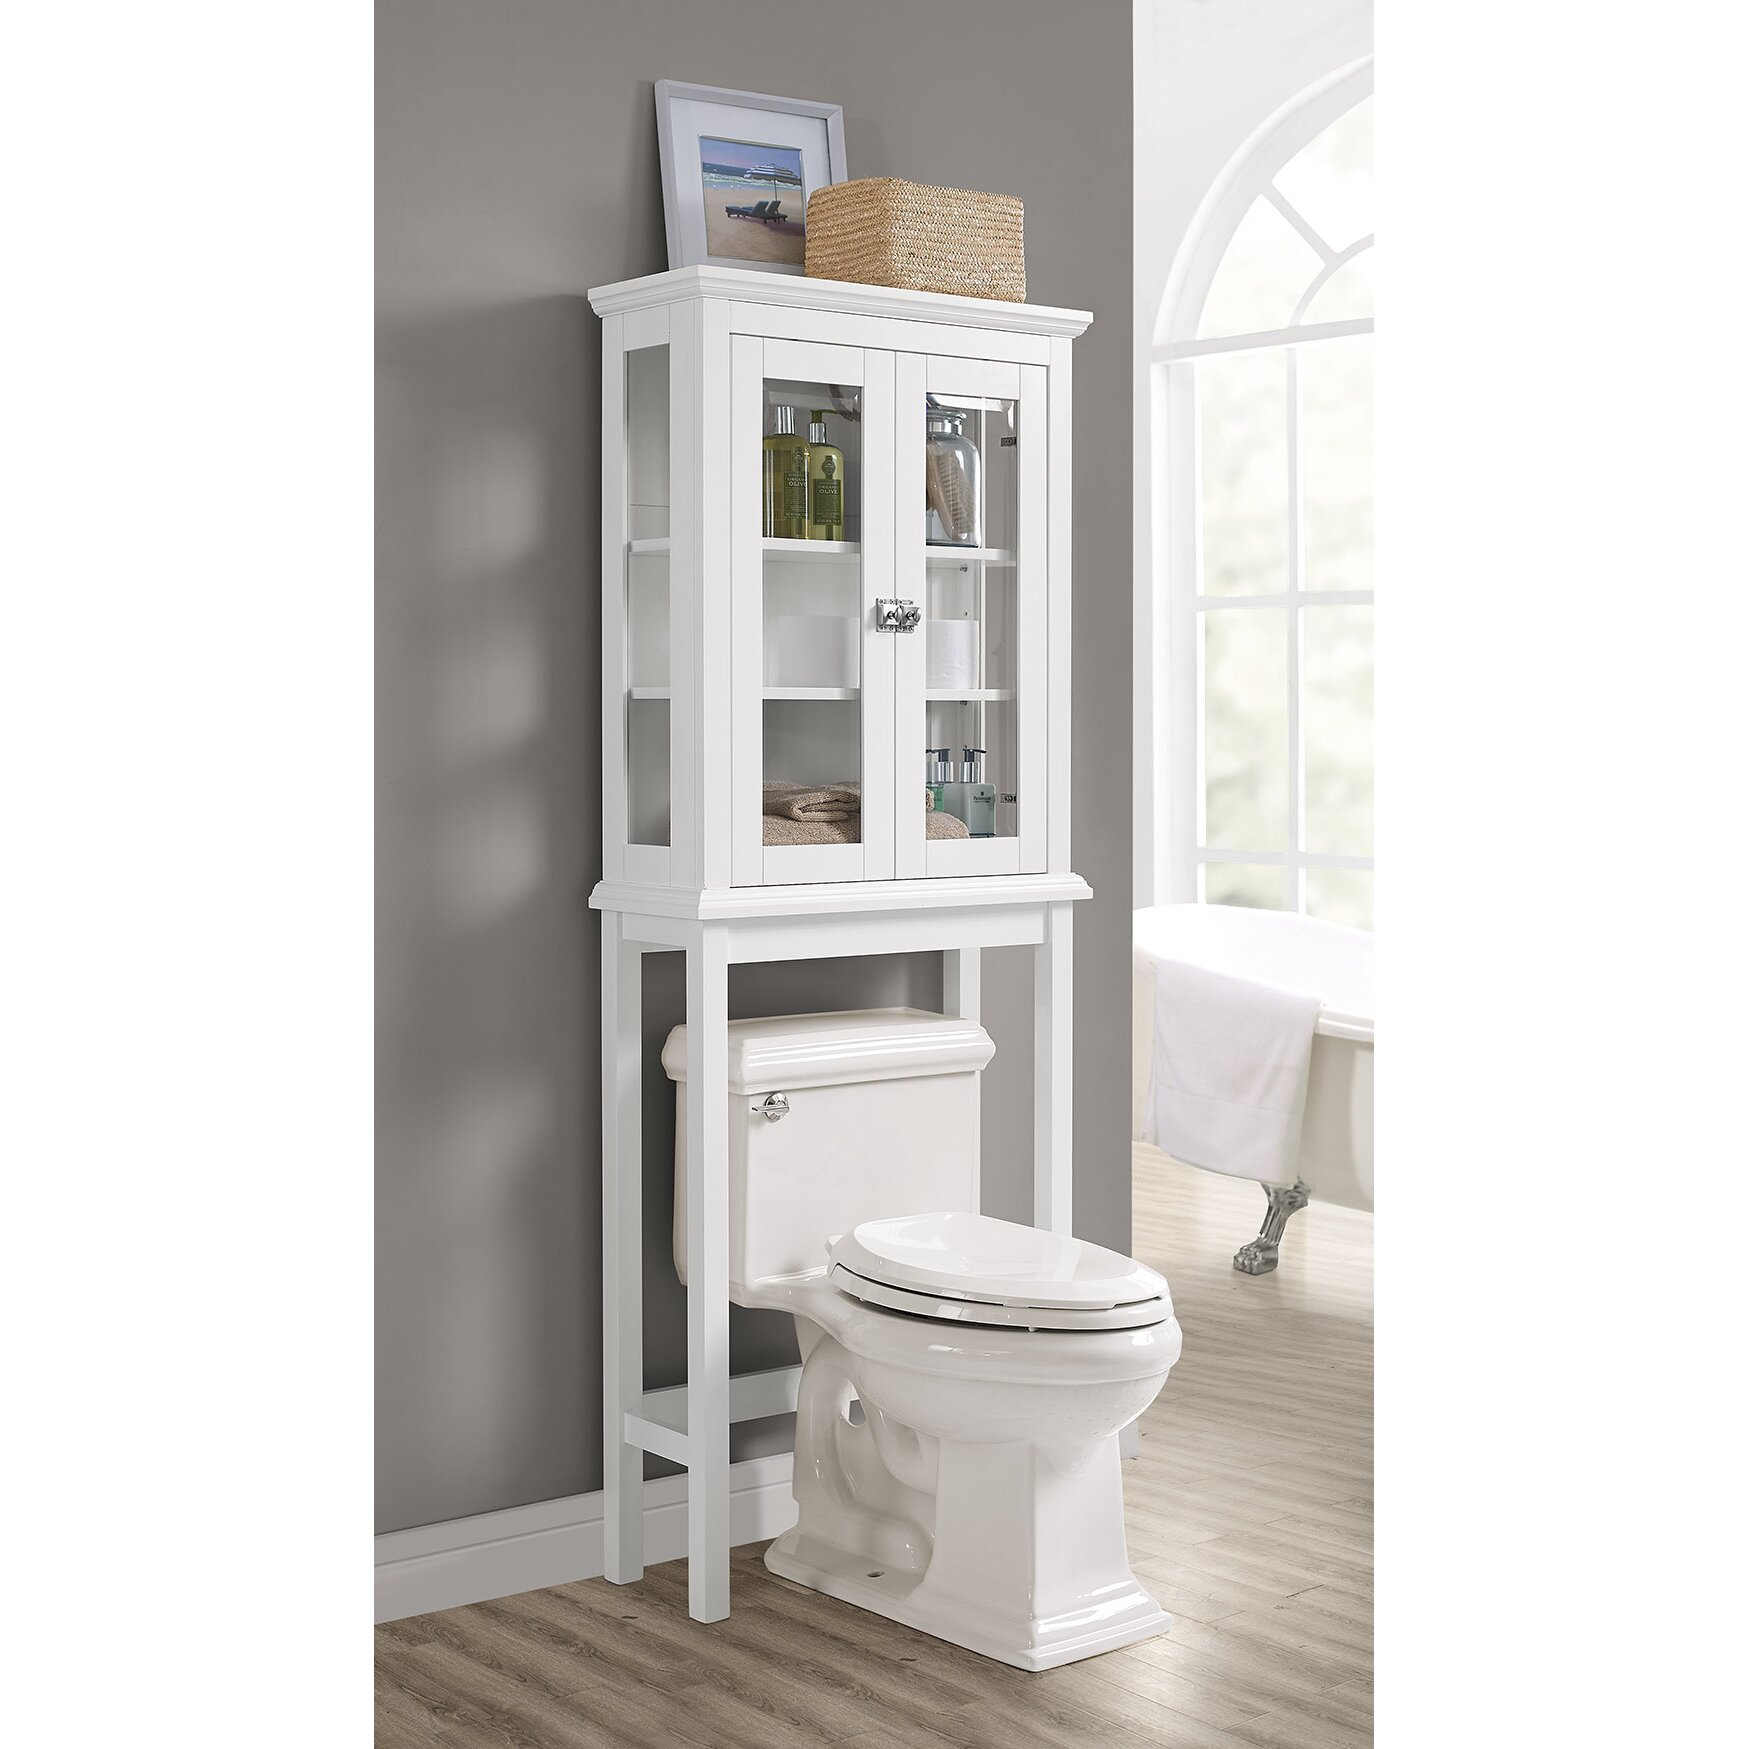 Space Saving Cabinet Over The Toilet Storage Cabinets Bathroom Etagere Youll Love